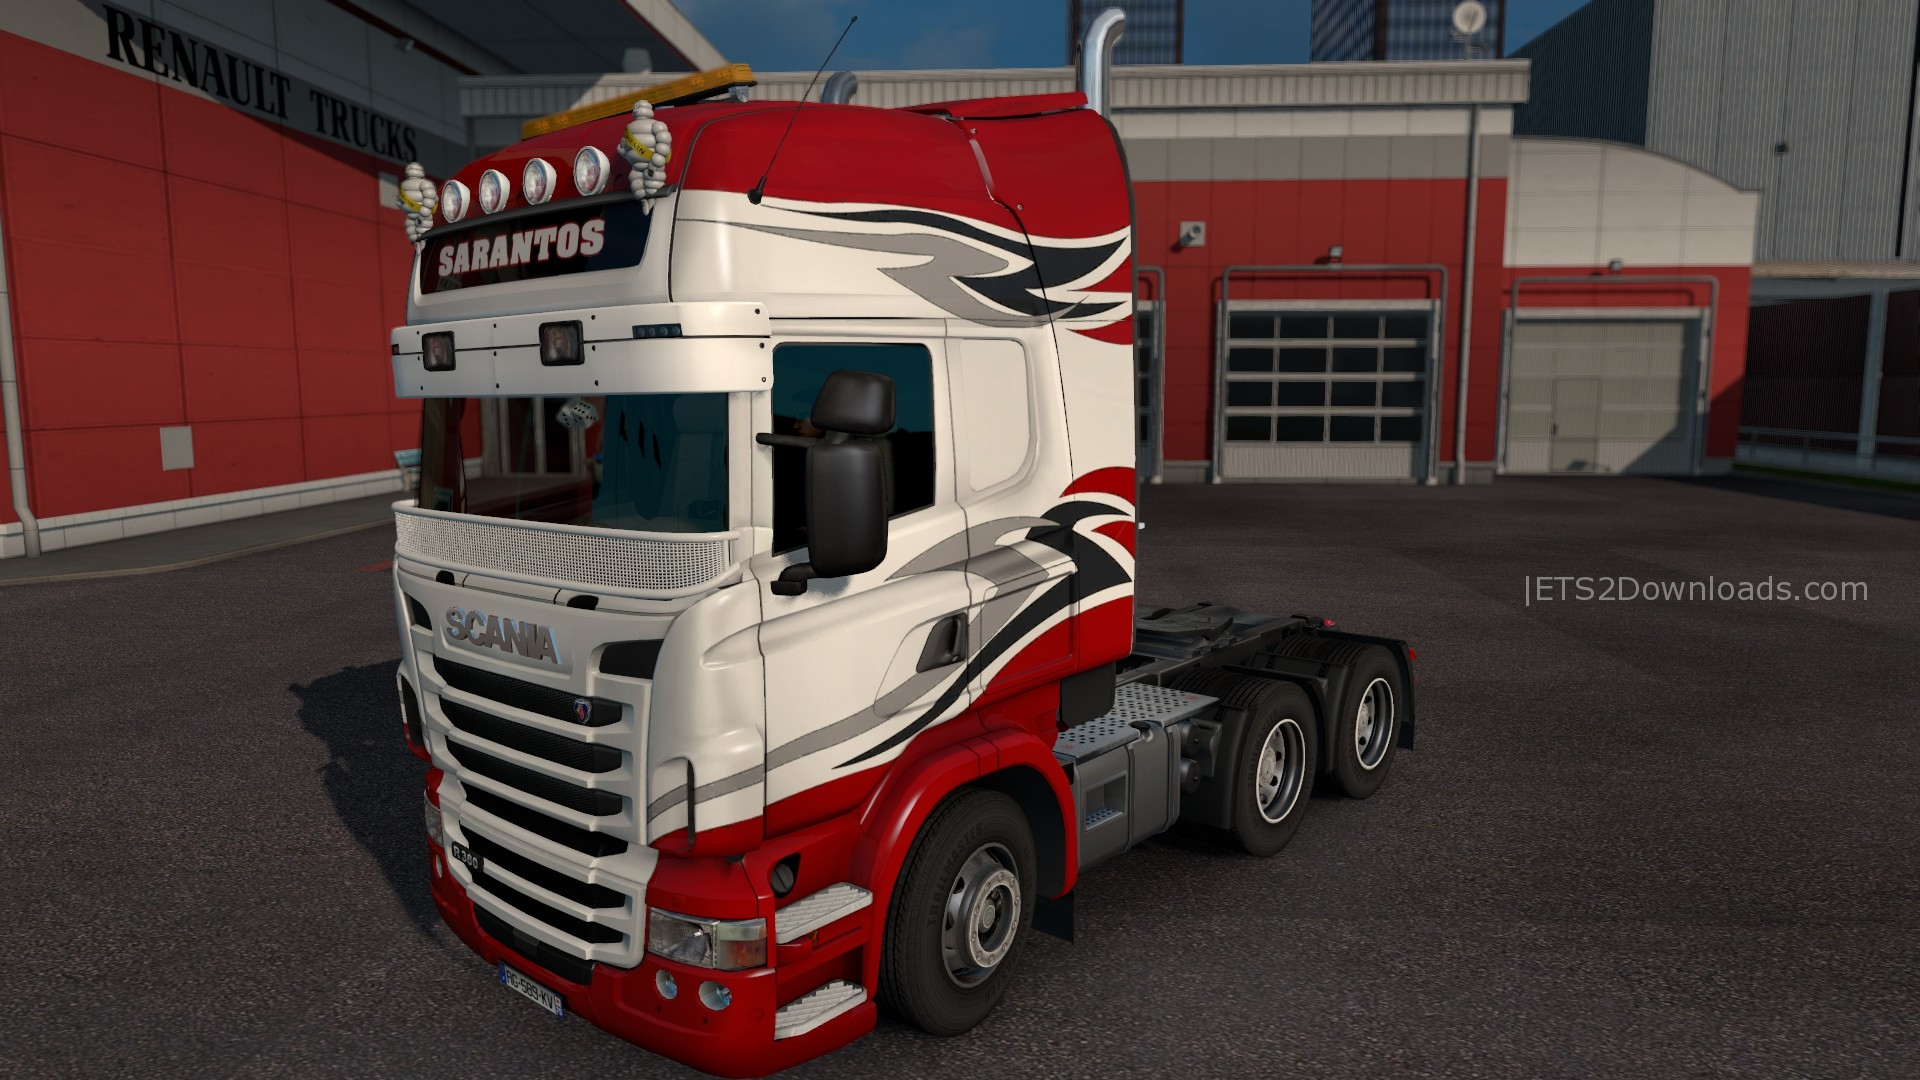 sarantos-skin-for-scania-rjl